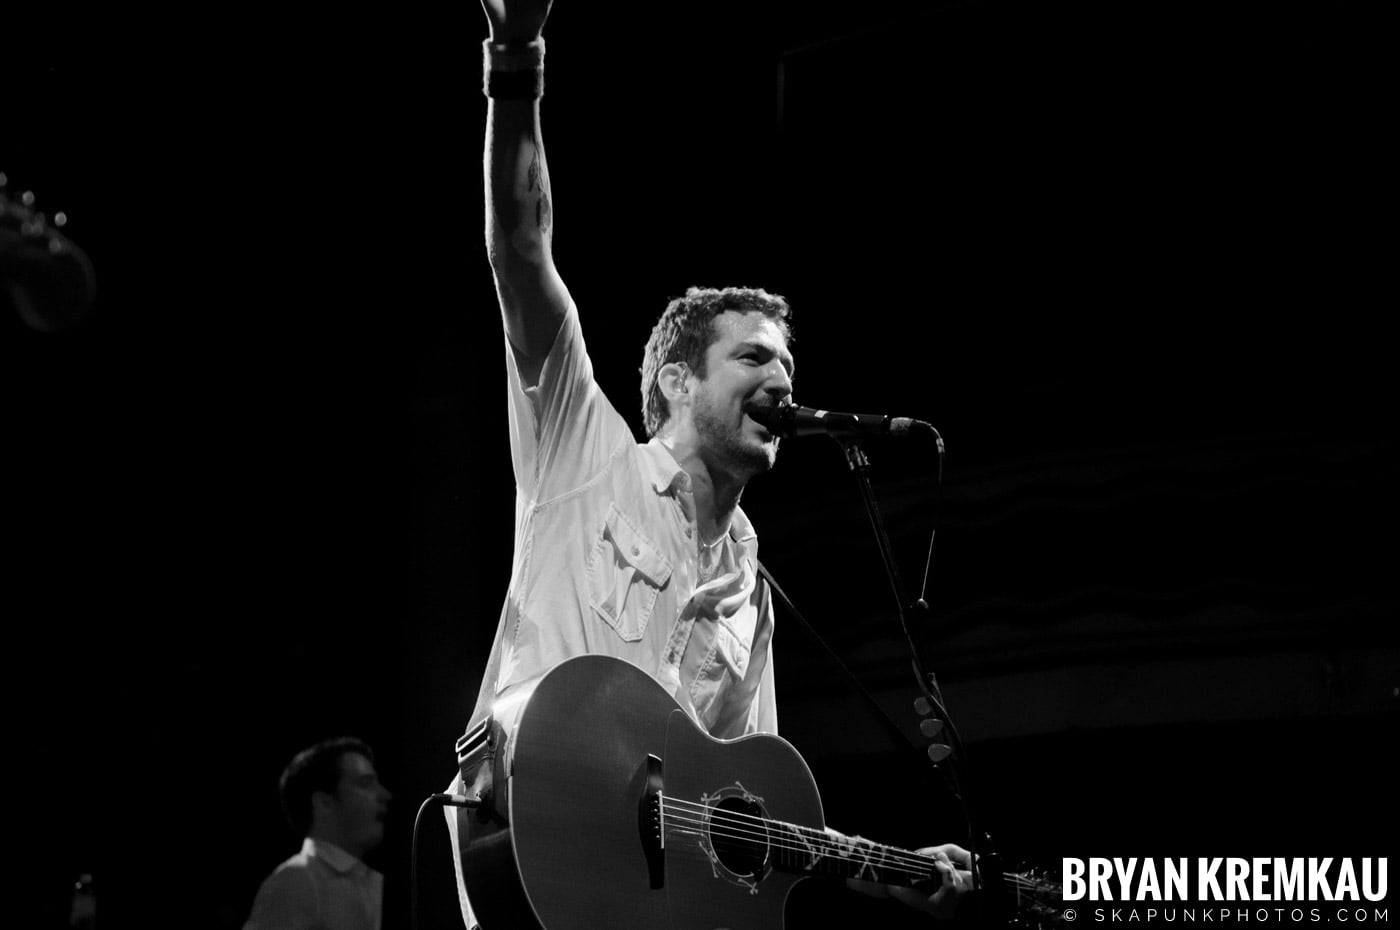 Frank Turner & The Sleeping Souls @ Webster Hall, NYC - 9.29.12 (1)